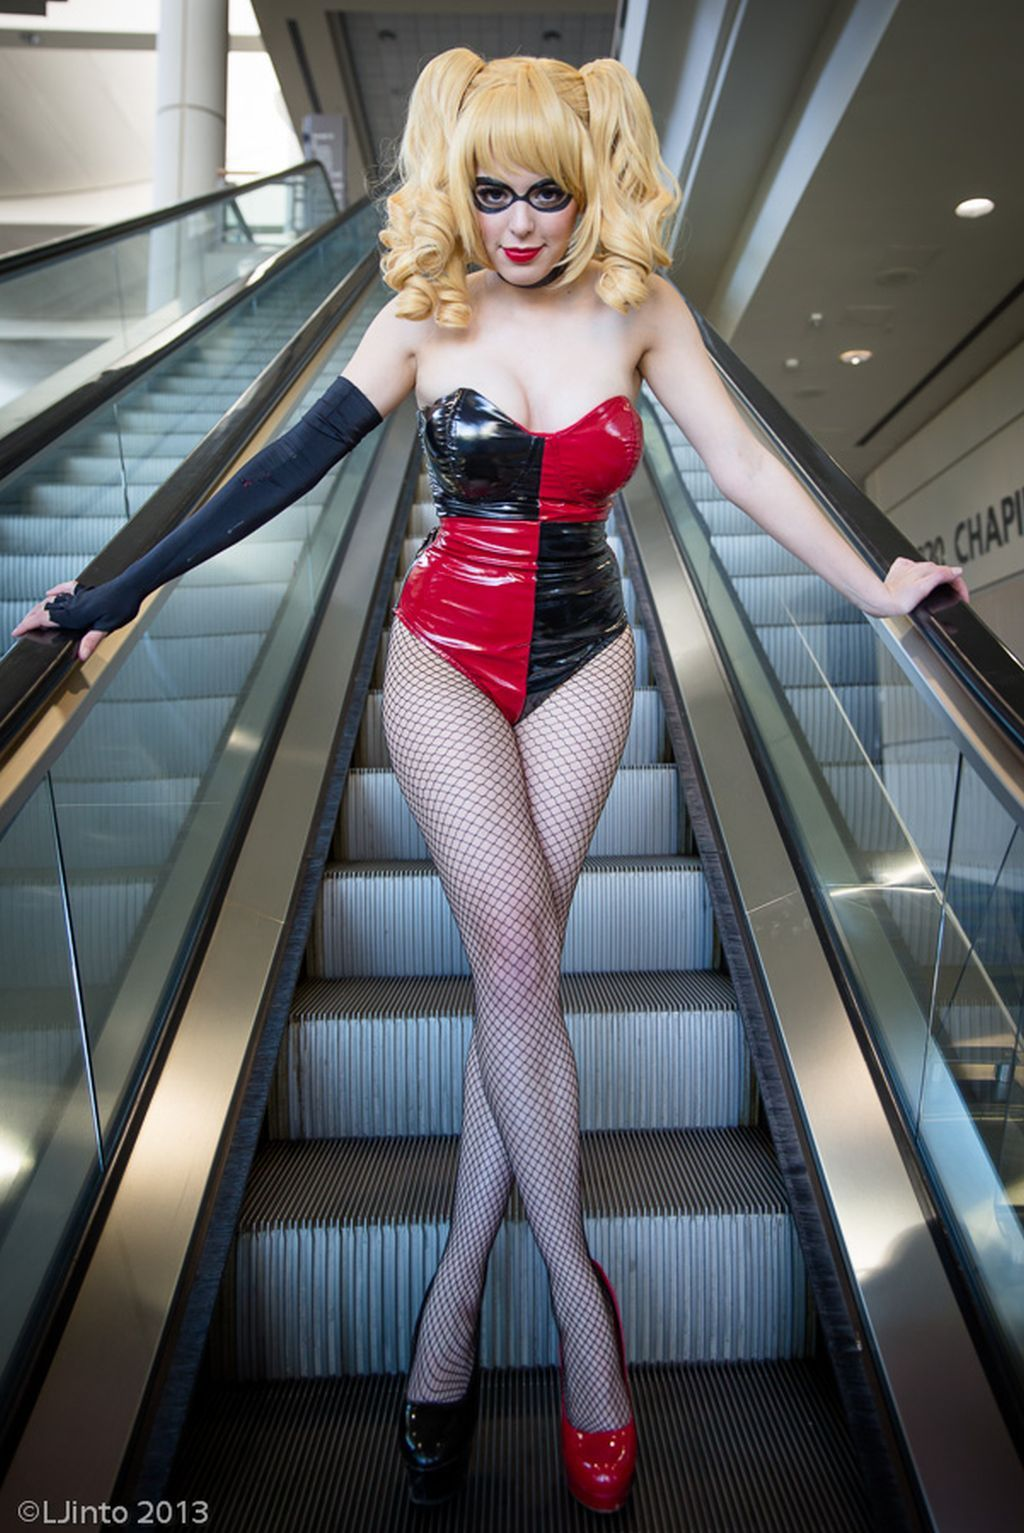 megacon harley and catwoman 4 sexy cosplay girls pinterest